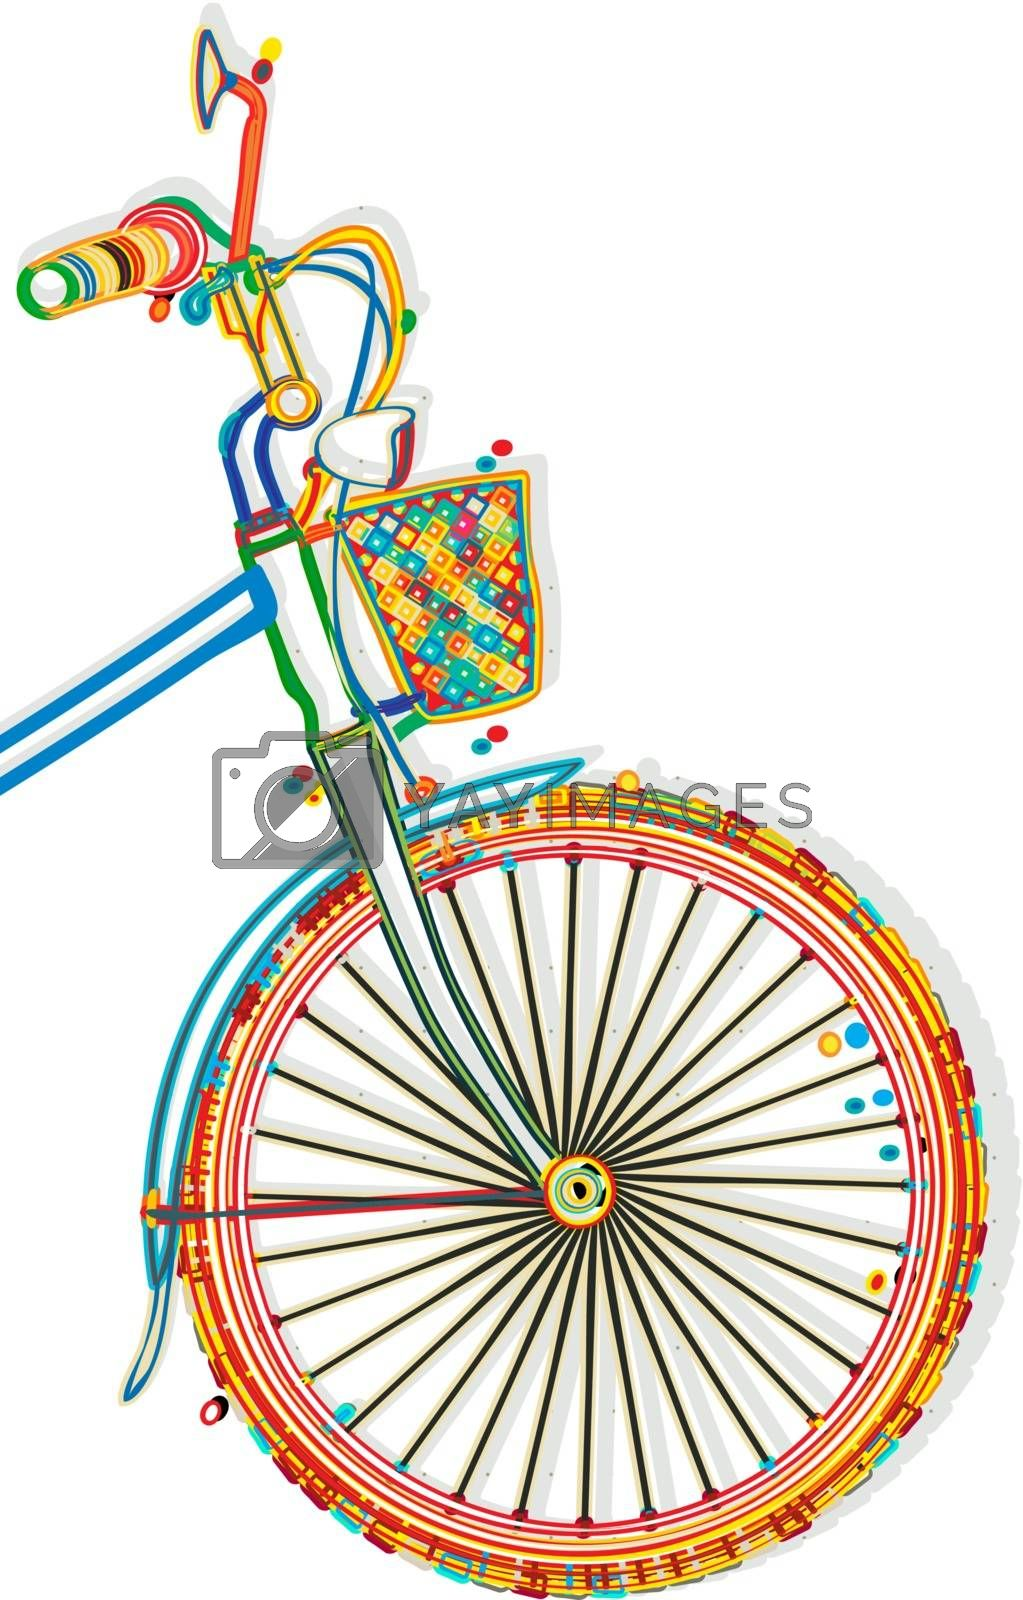 Bicycle Template by Lirch